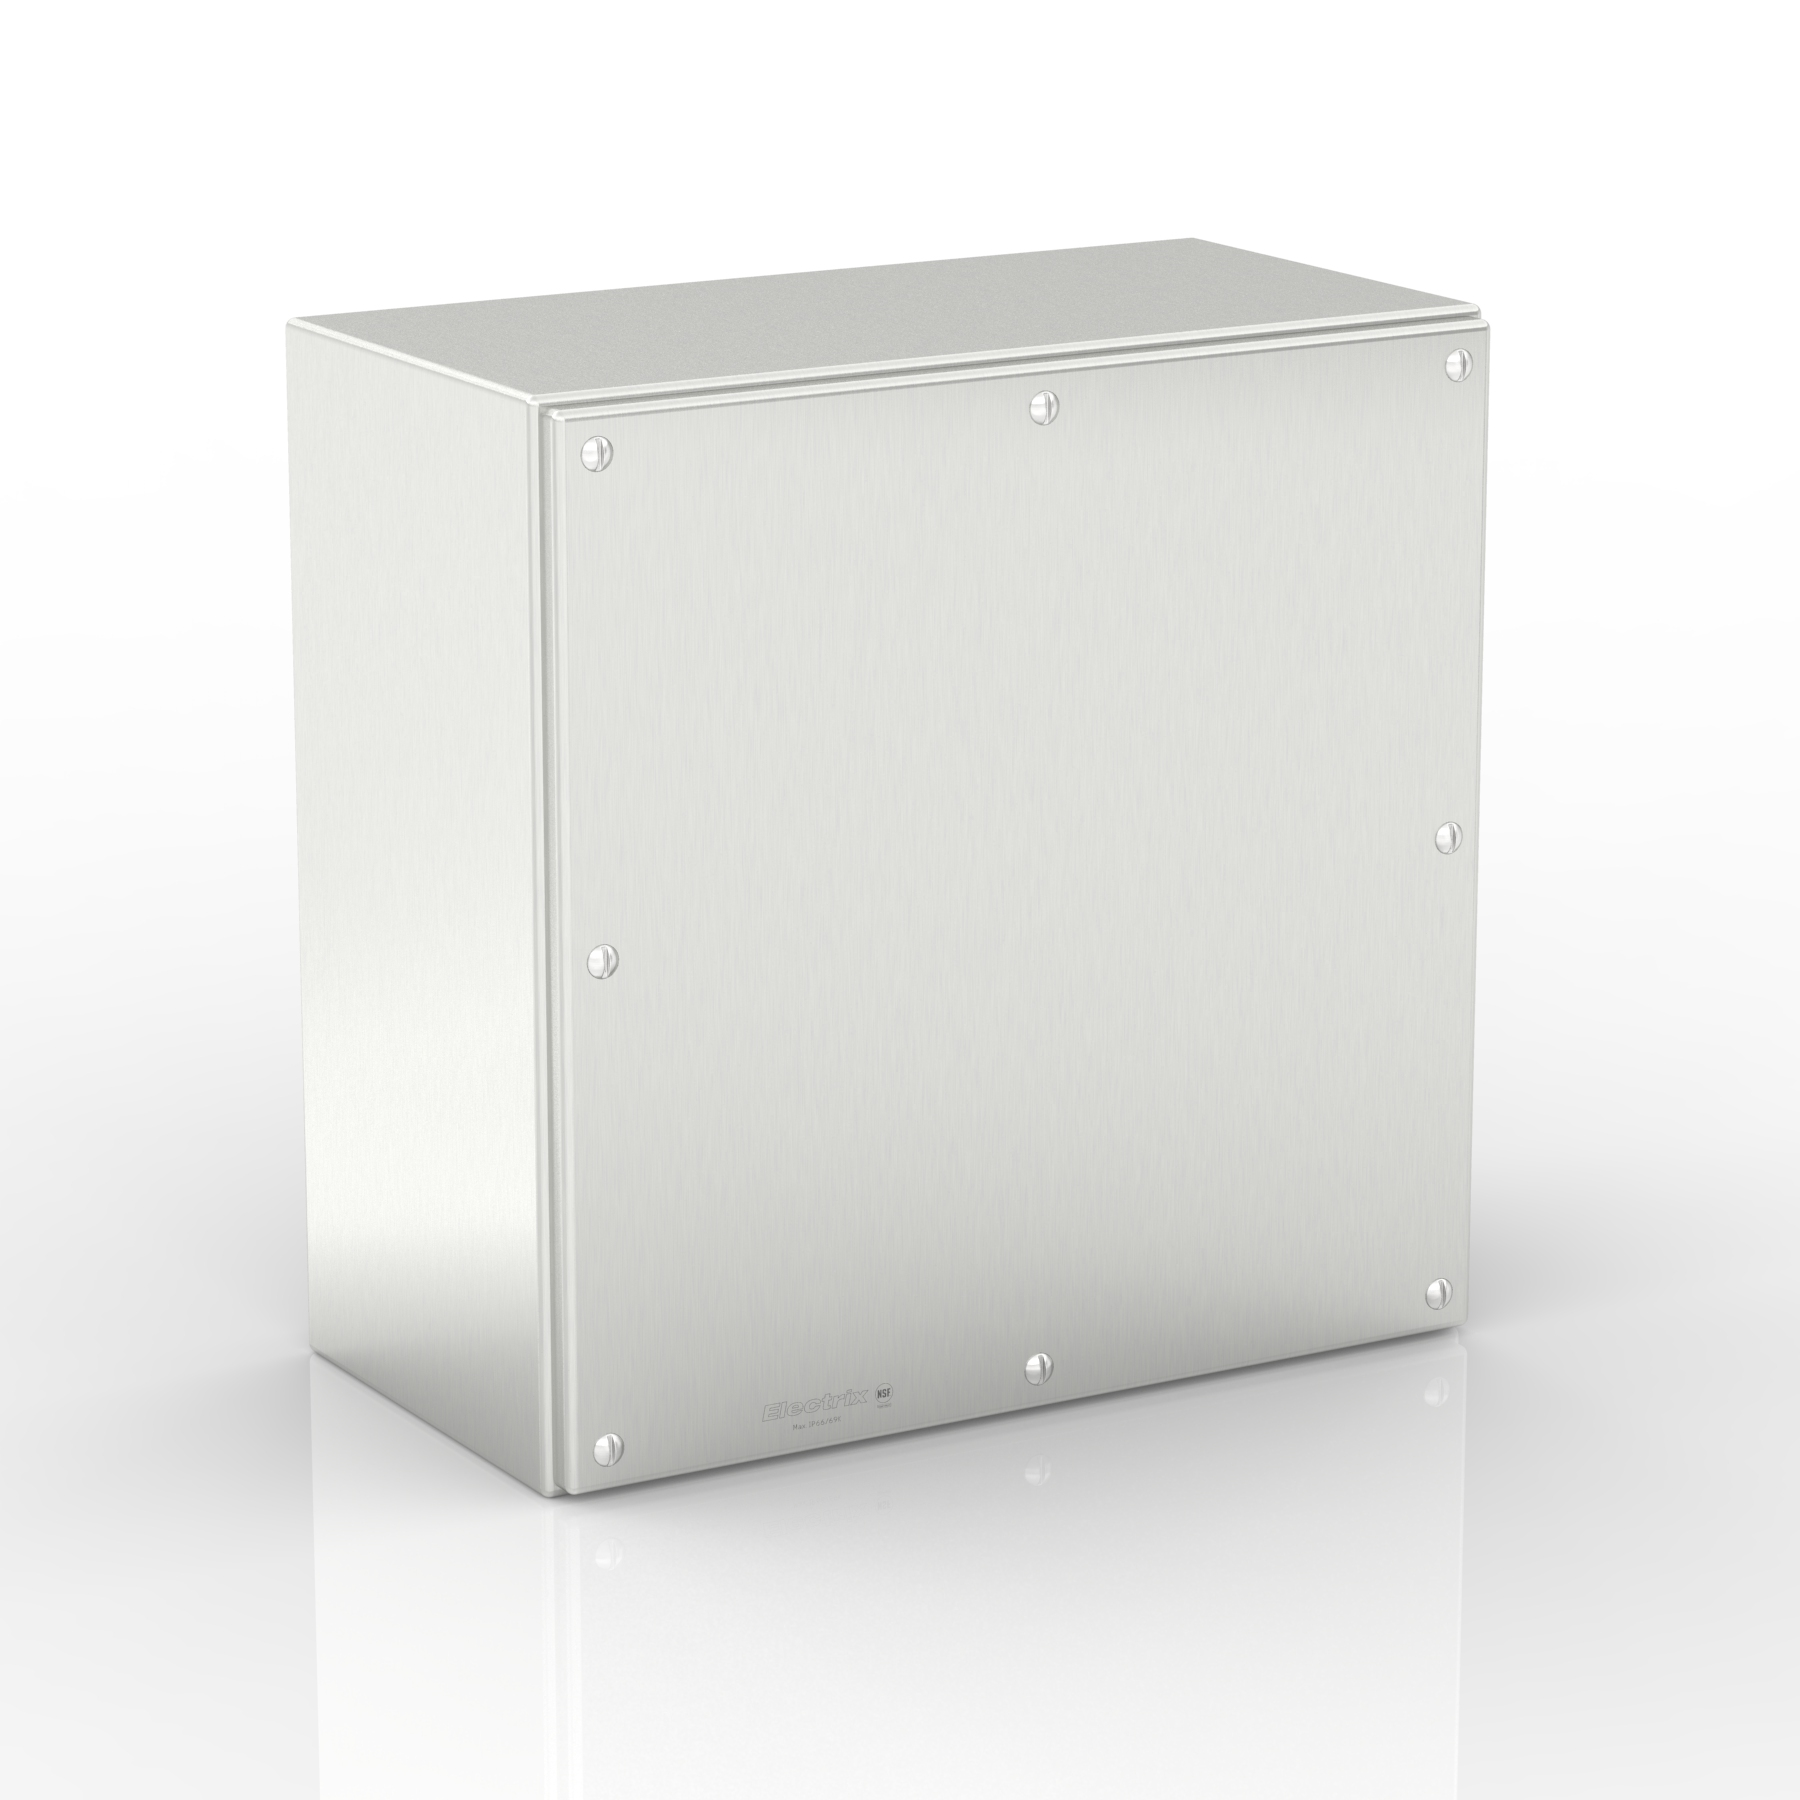 SL-XTCE80-S316 | WASHDOWNPRO IP69K Flat Roof Slimline Terminal & Control Enclosure with Removable Stand-Off Mounting Pillars